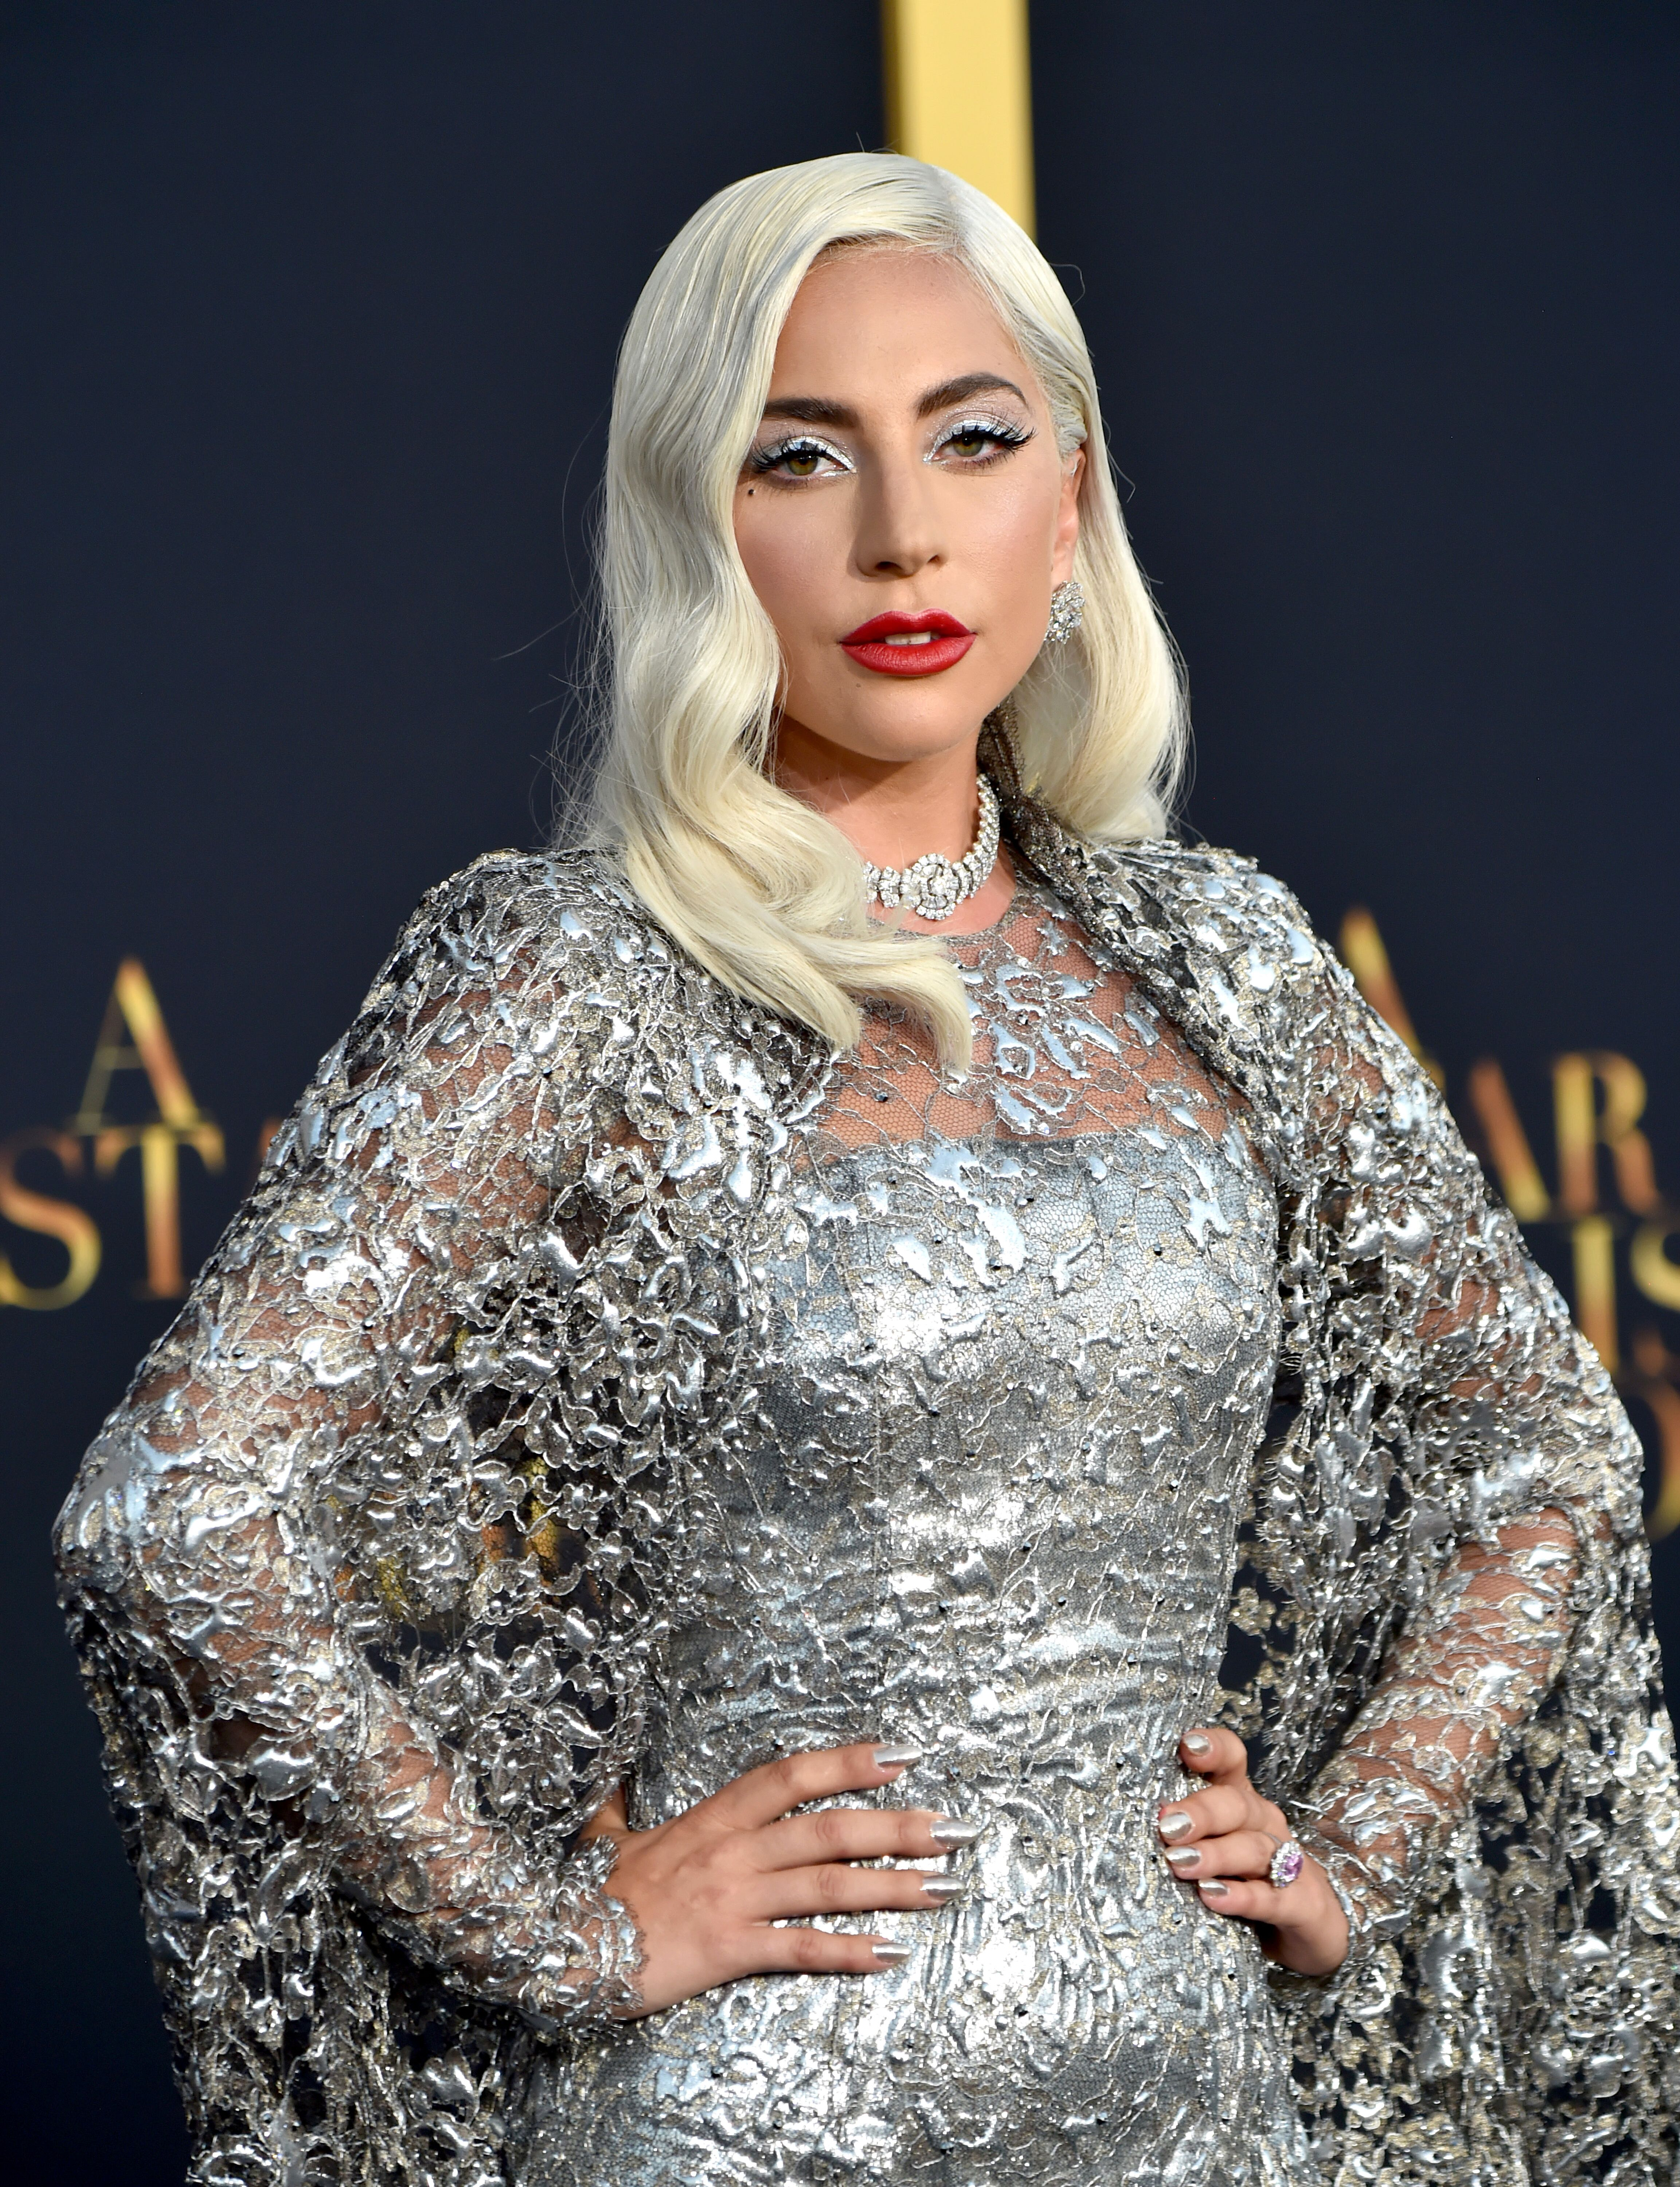 Lady Gaga at the premiere of 'A Star Is Born' at The Shrine Auditorium on September 24, 2018, in Los Angeles, California | Photo: Kevin Mazur/Getty Images